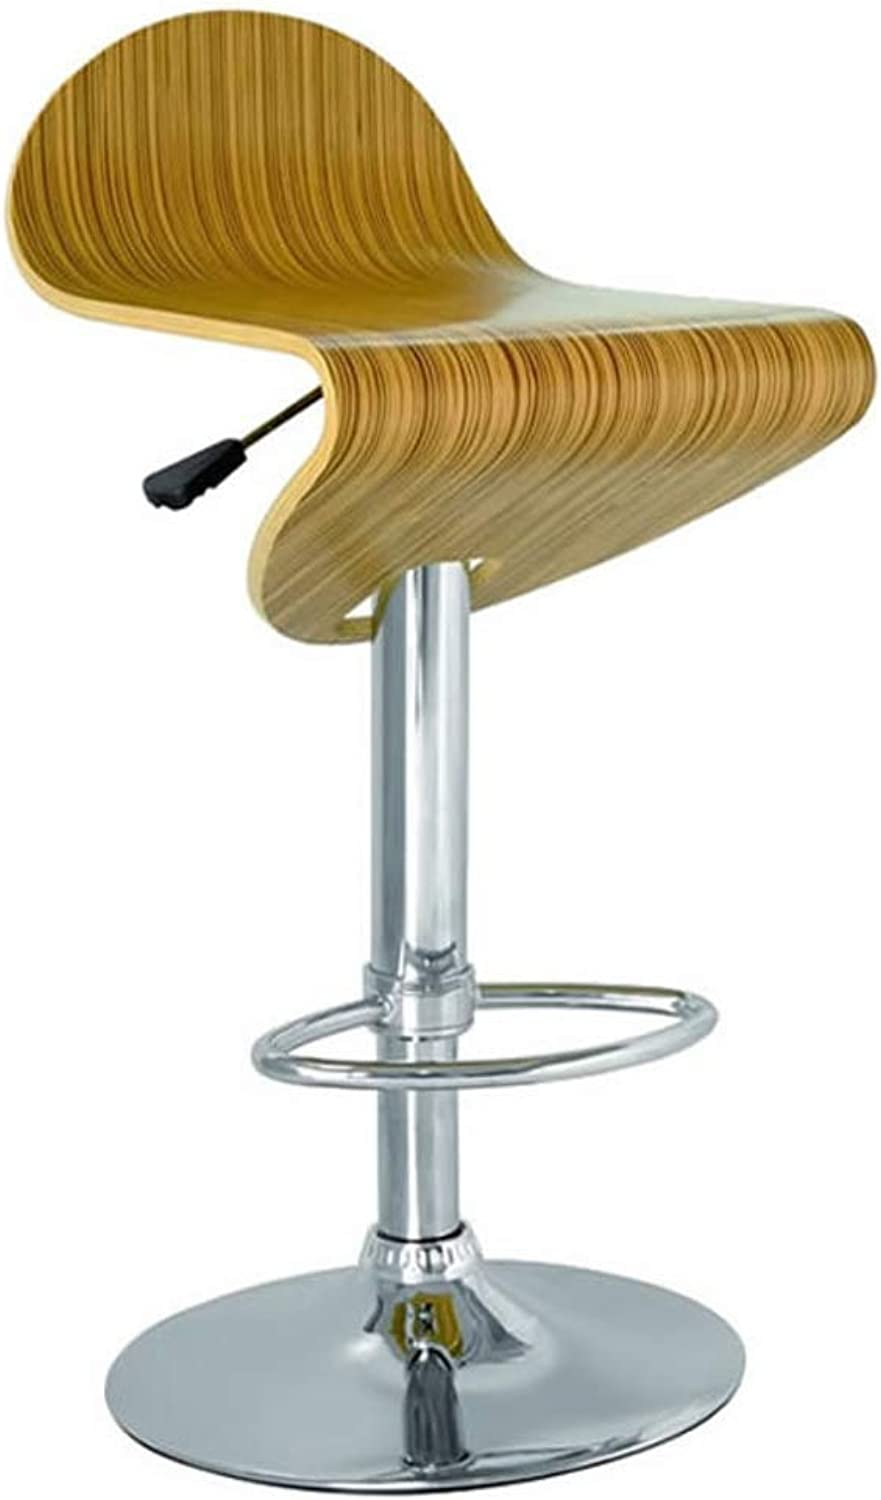 Solid Wood Stripe Barstools, 24 Inch Swivel Stool High Stool with Backs Pub Chair Counter Bar Stool Chair for Bar Home-Stripe